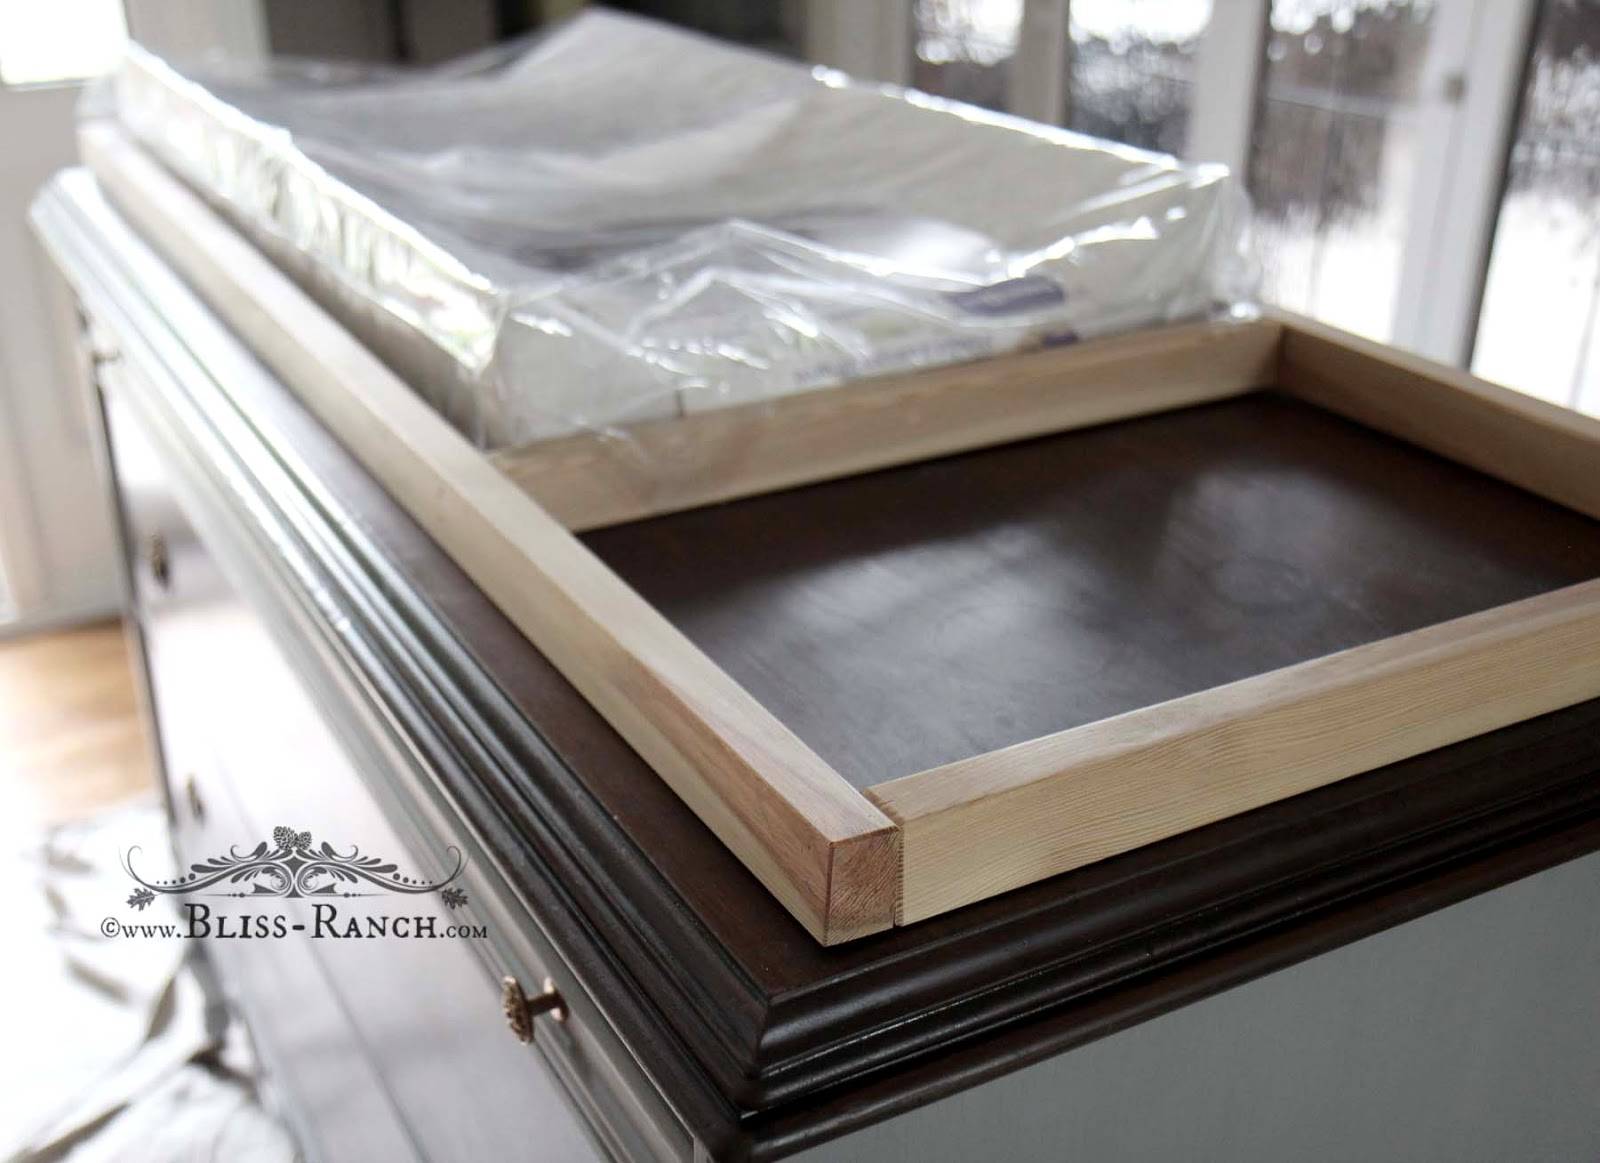 Bliss Ranch Simple Dresser Top To Hold Changing Pad For Baby